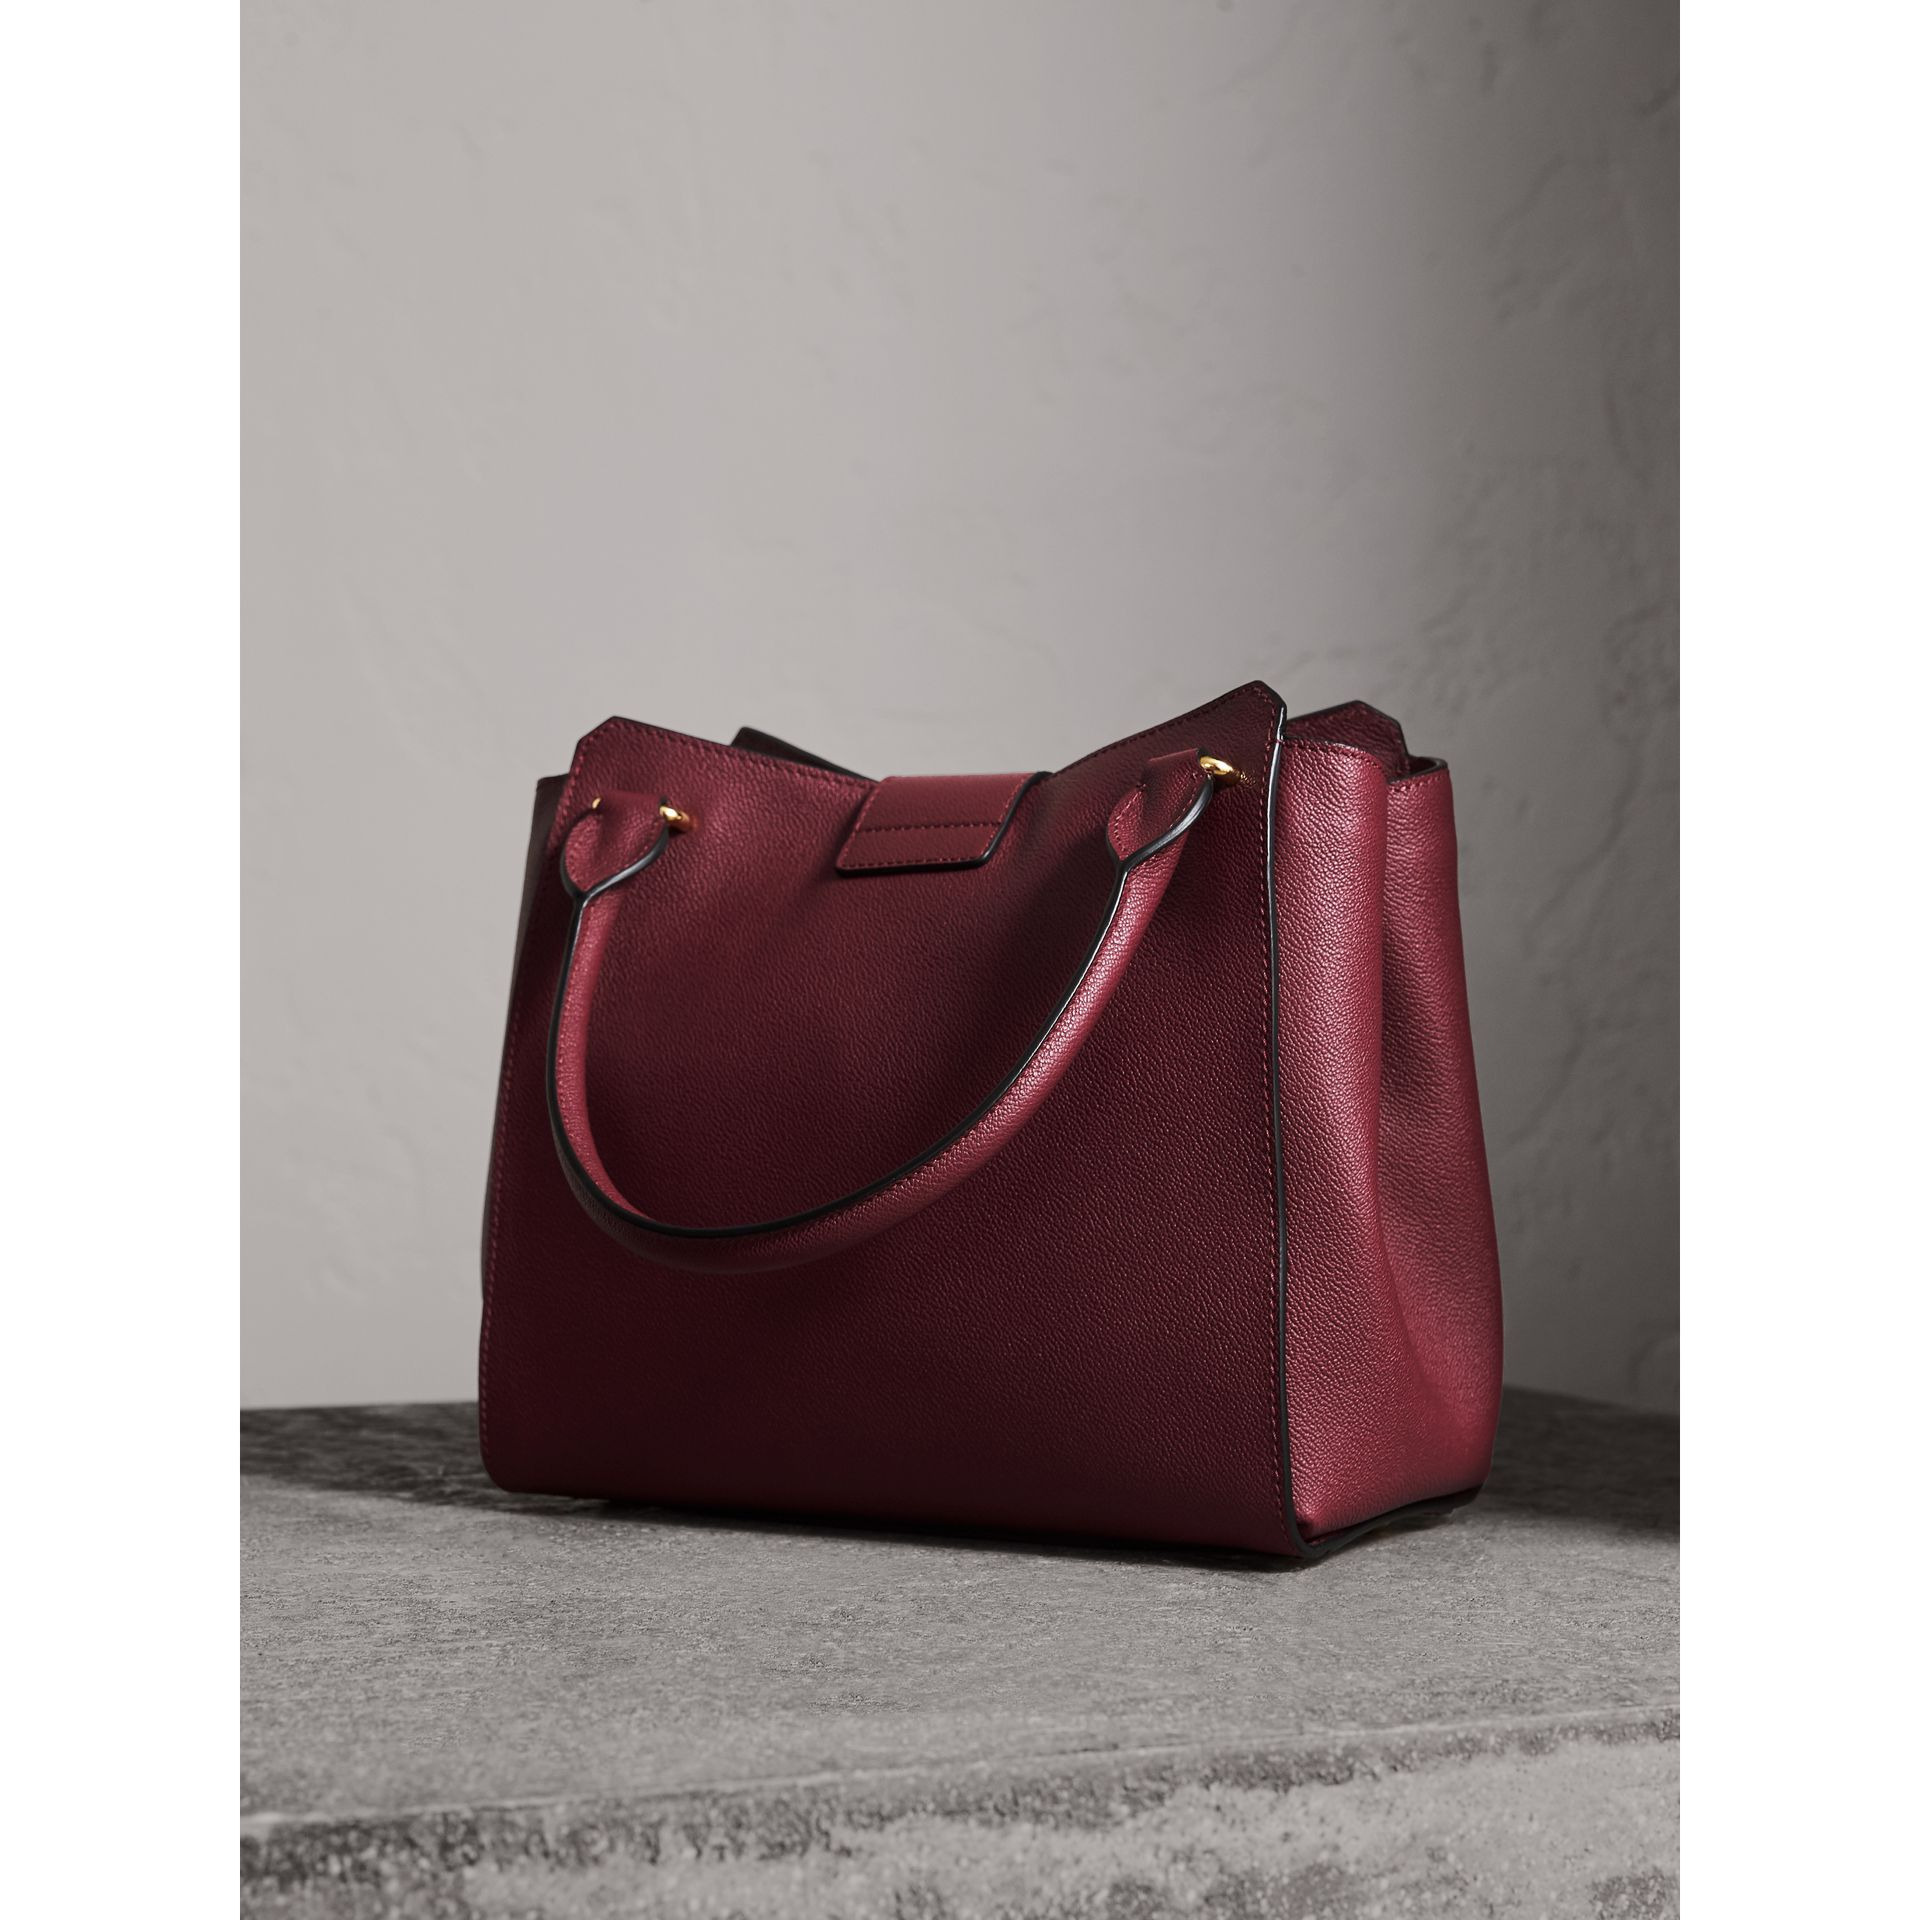 Borsa tote The Buckle media in pelle a grana (Prugna Scuro) - Donna | Burberry - immagine della galleria 5